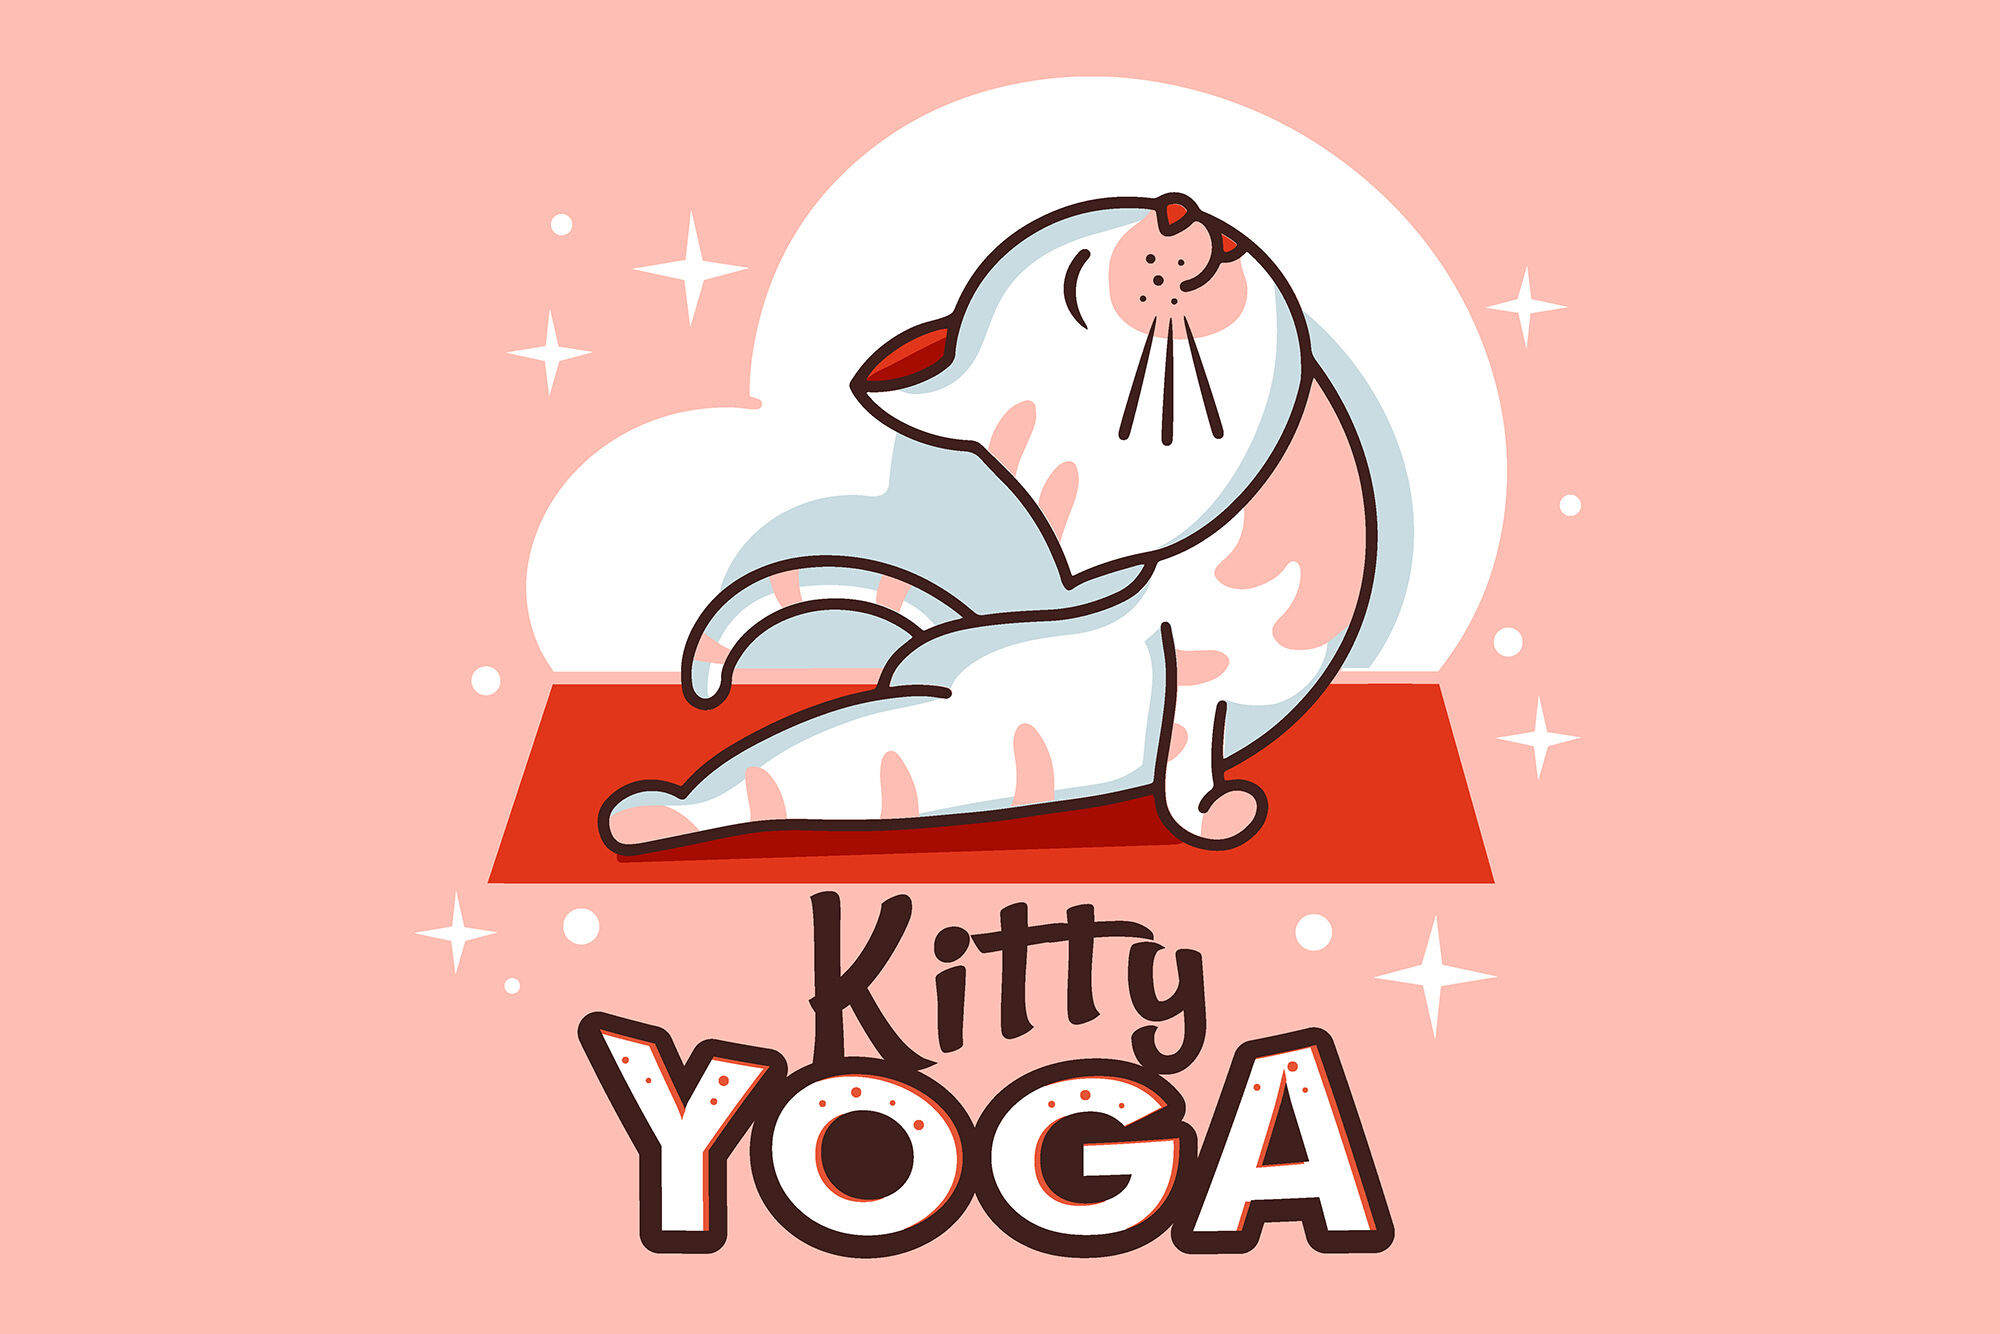 Funny Kitty Yoga Cartoon Character By Lettering Logo Thehungryjpeg Com